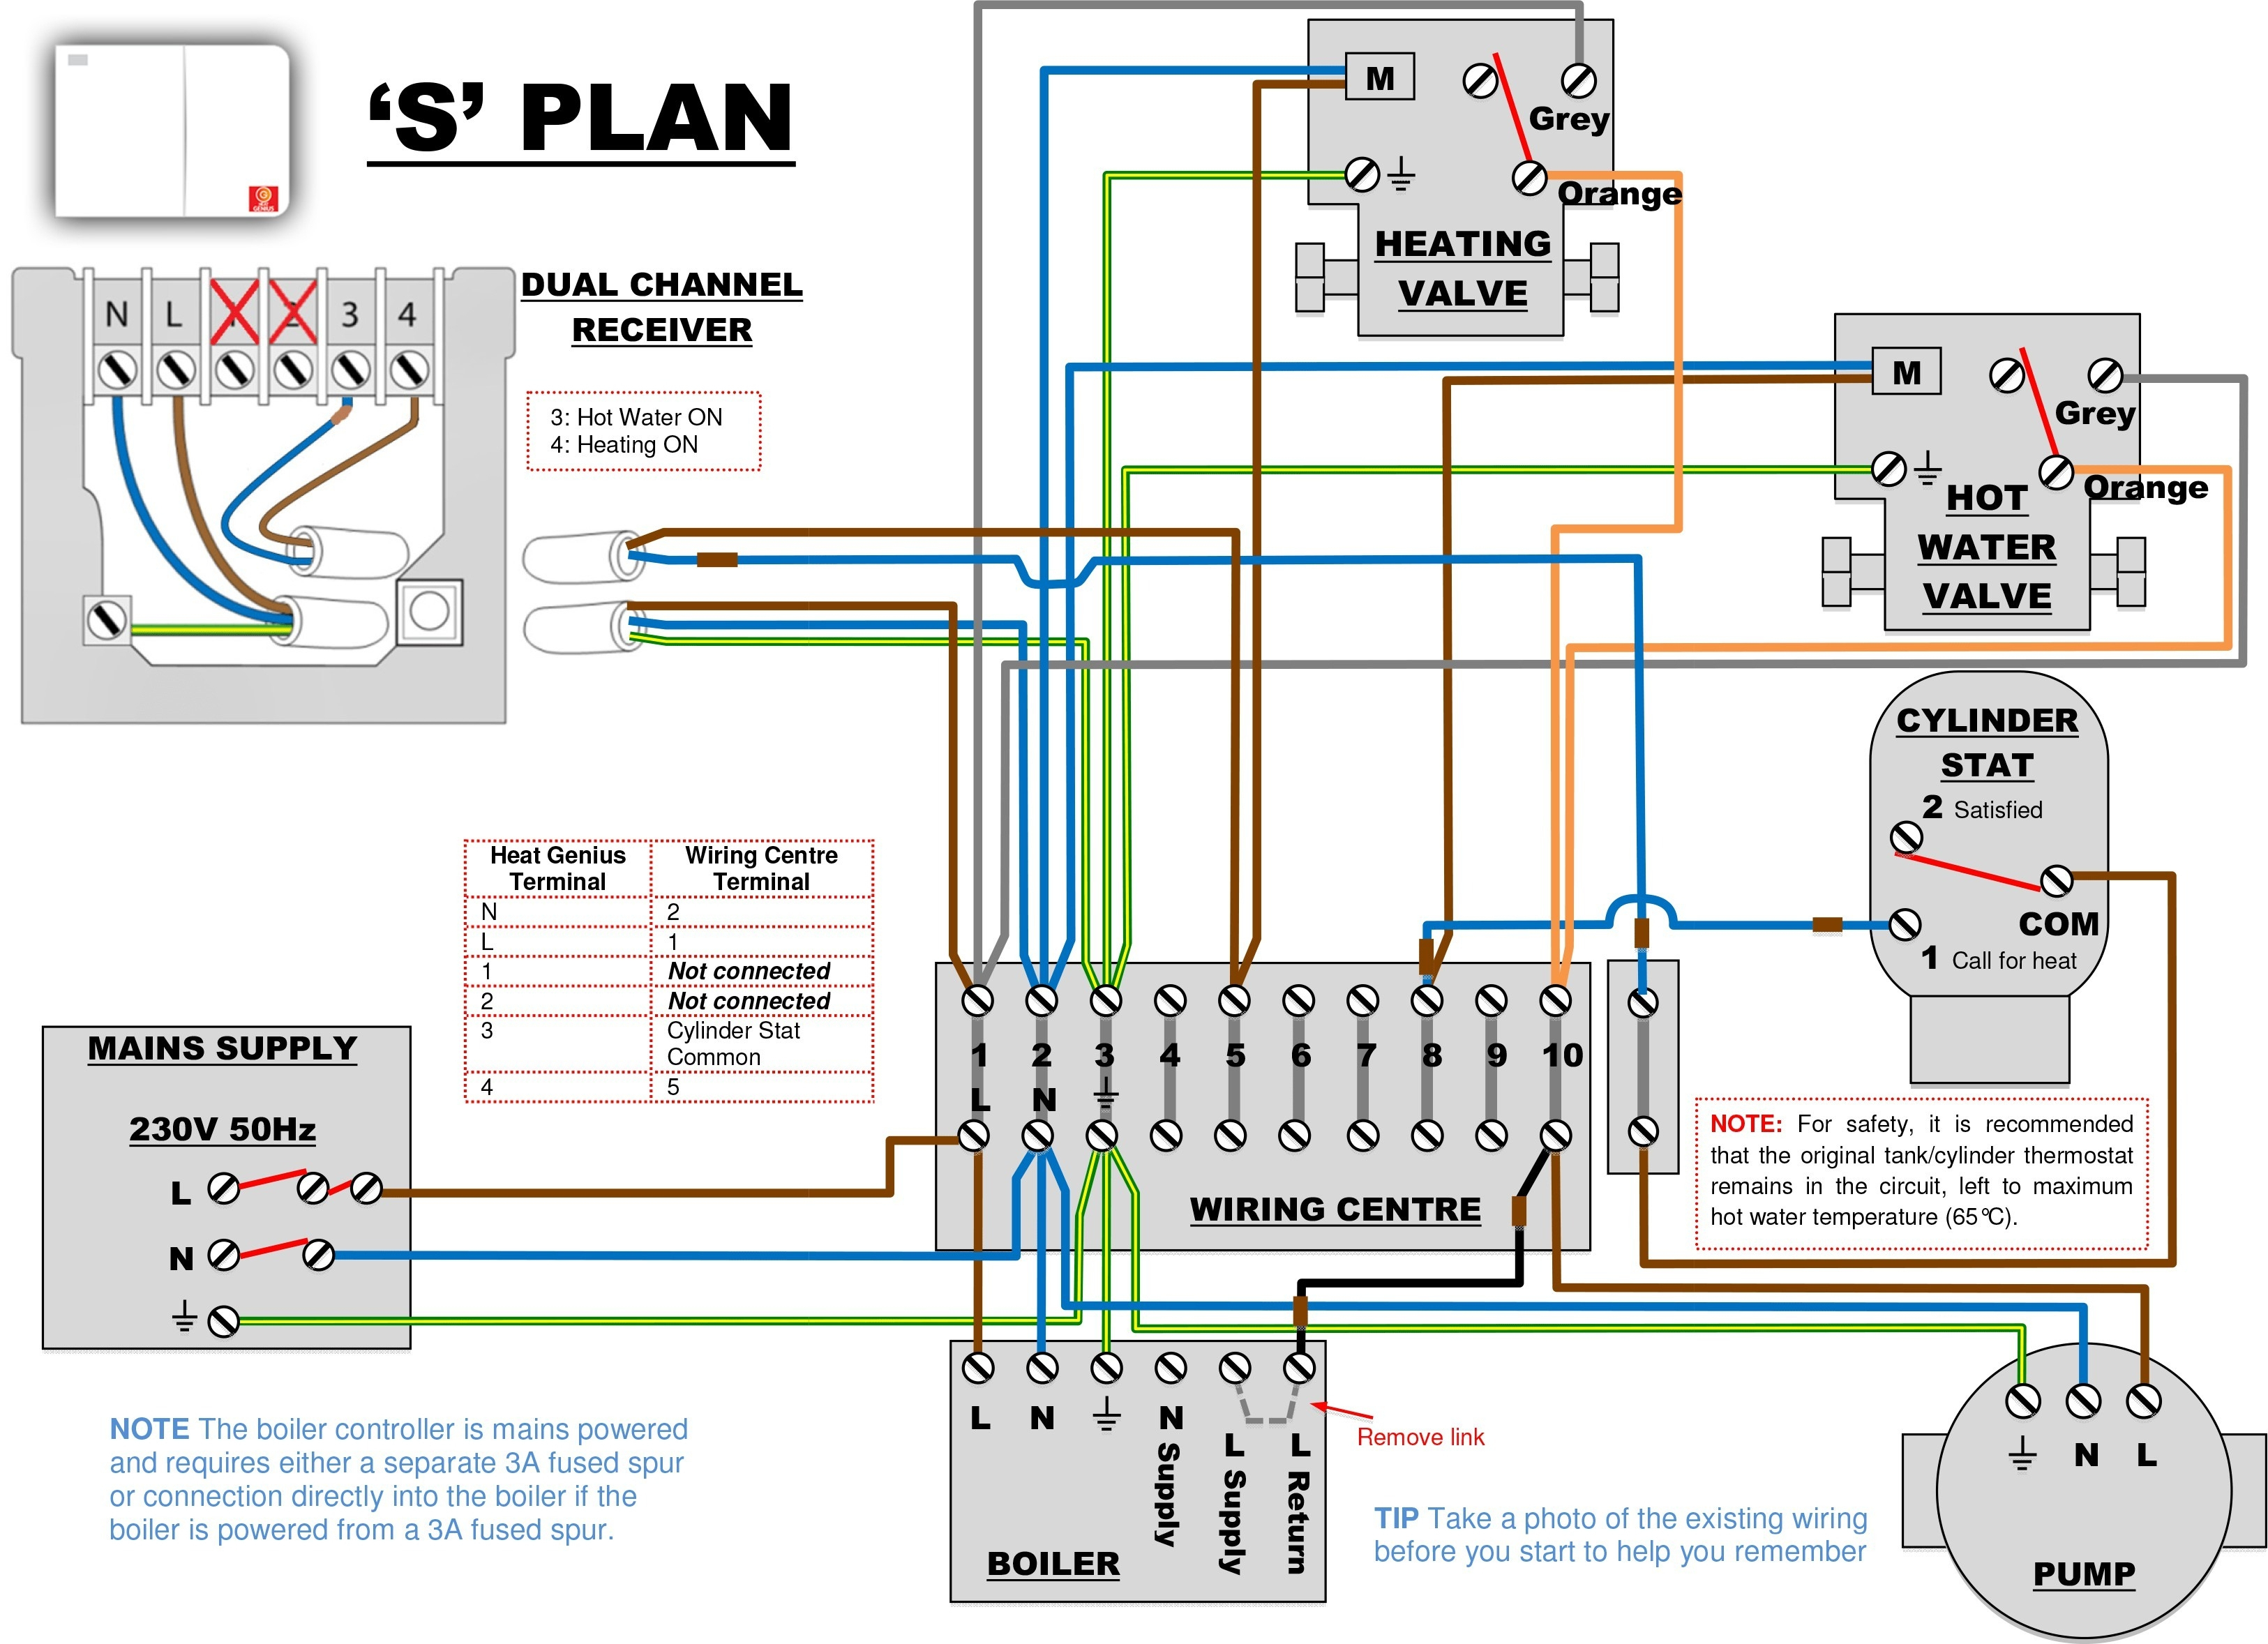 Nest Thermostat Wiring Diagram For Carrier Infinity - Wiring - Wiring Diagram For Nest